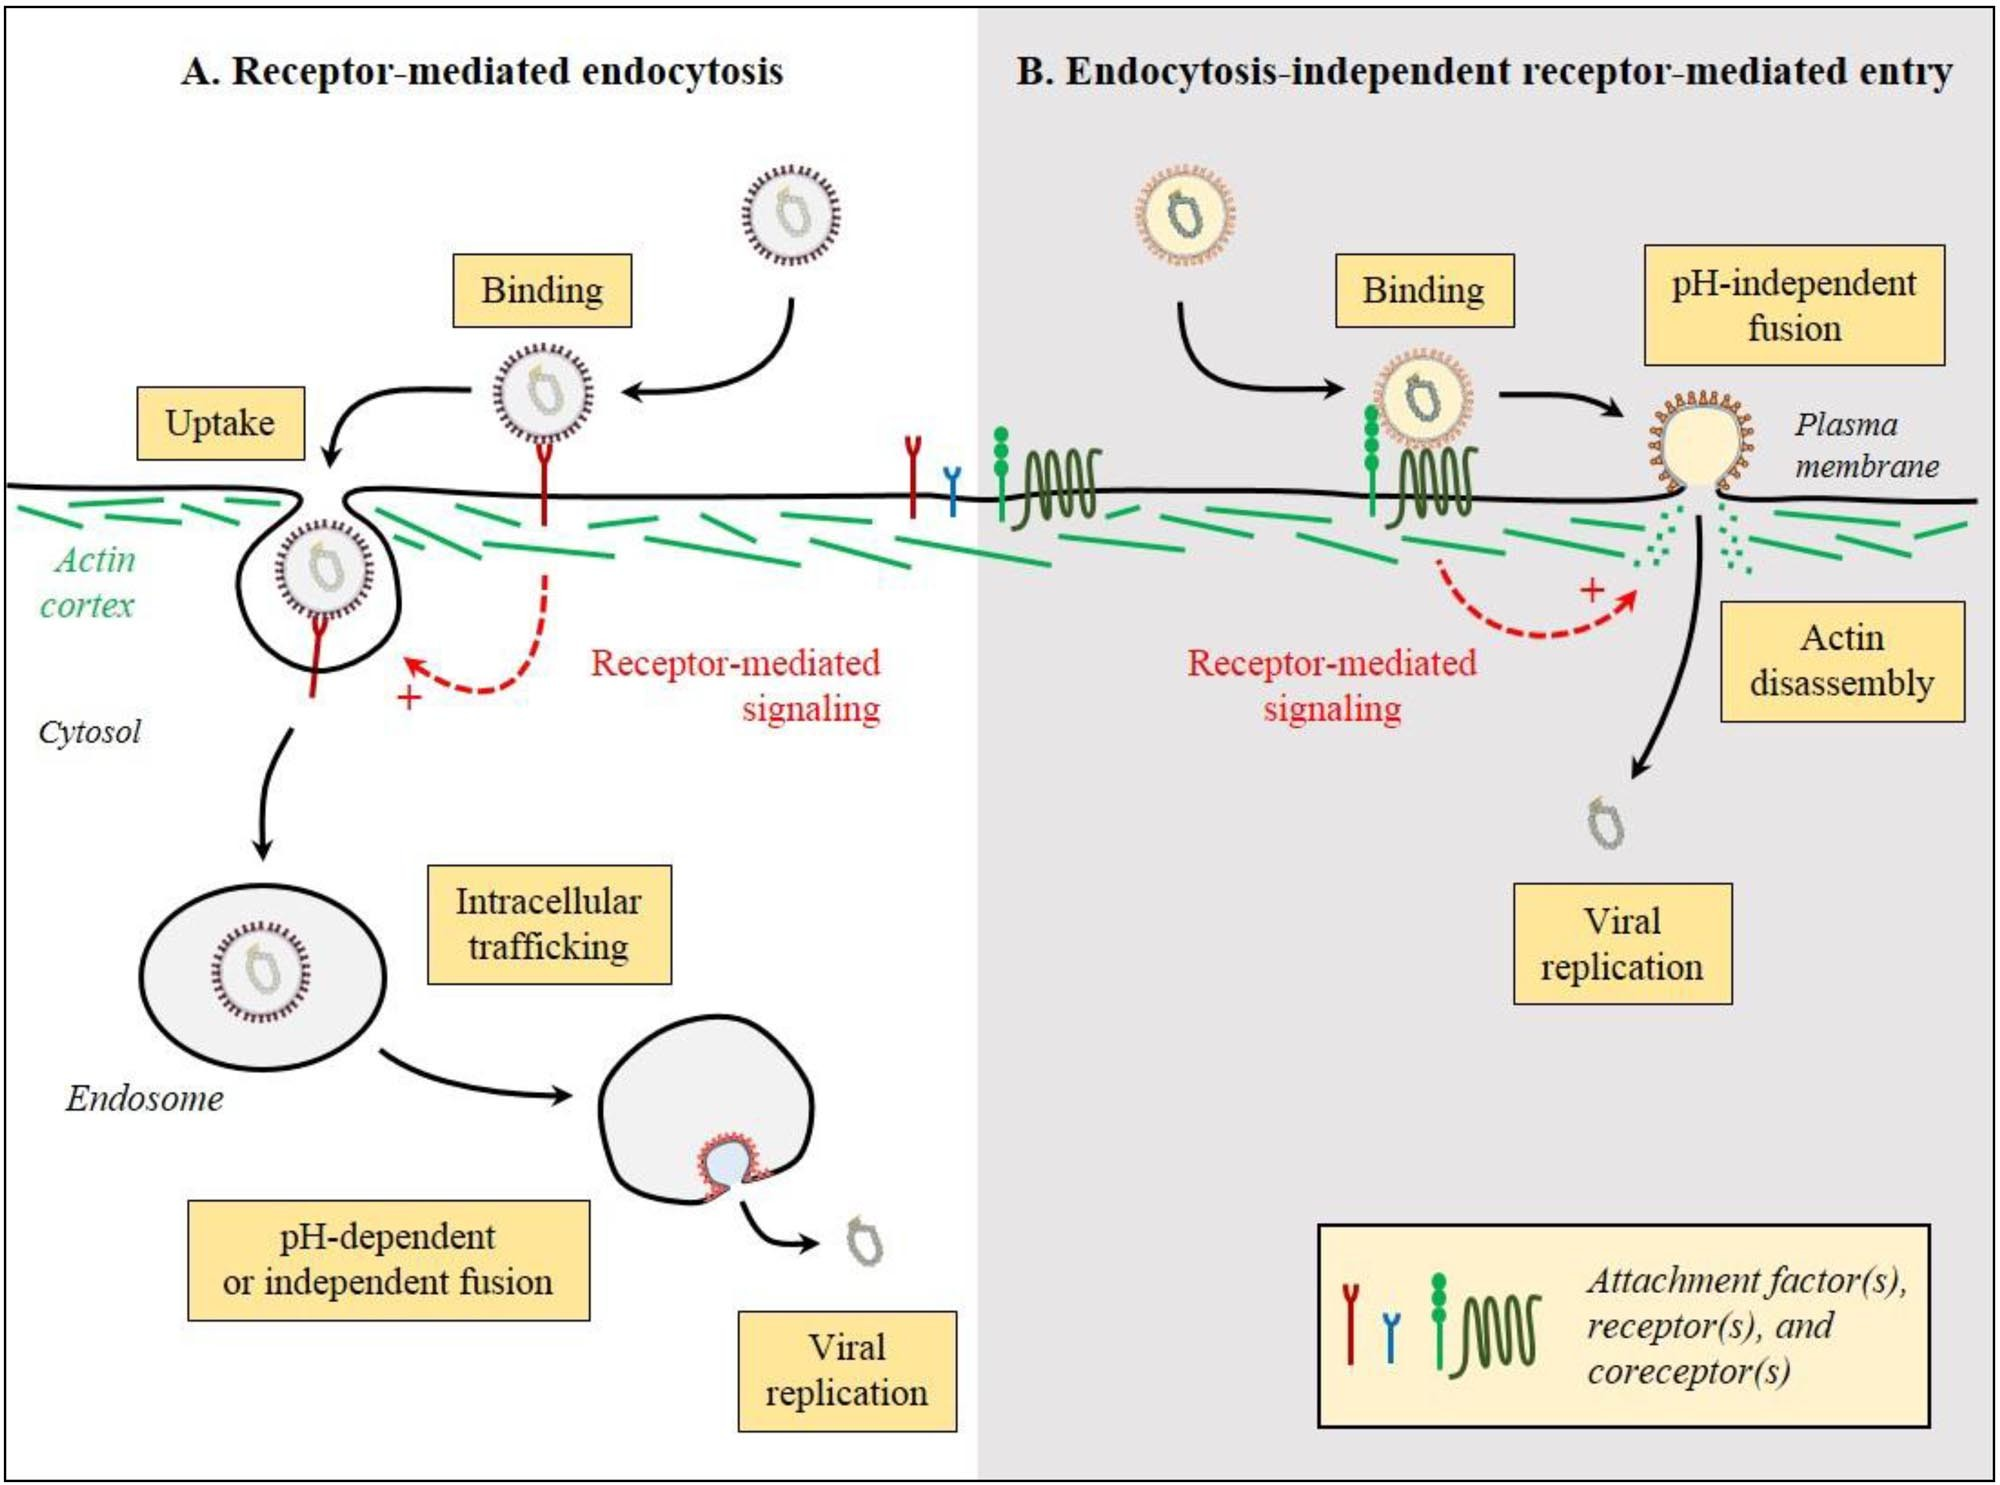 Receptor Mediated Endocytosis And Endocytosis-independent Receptor-mediated Entry Diagram